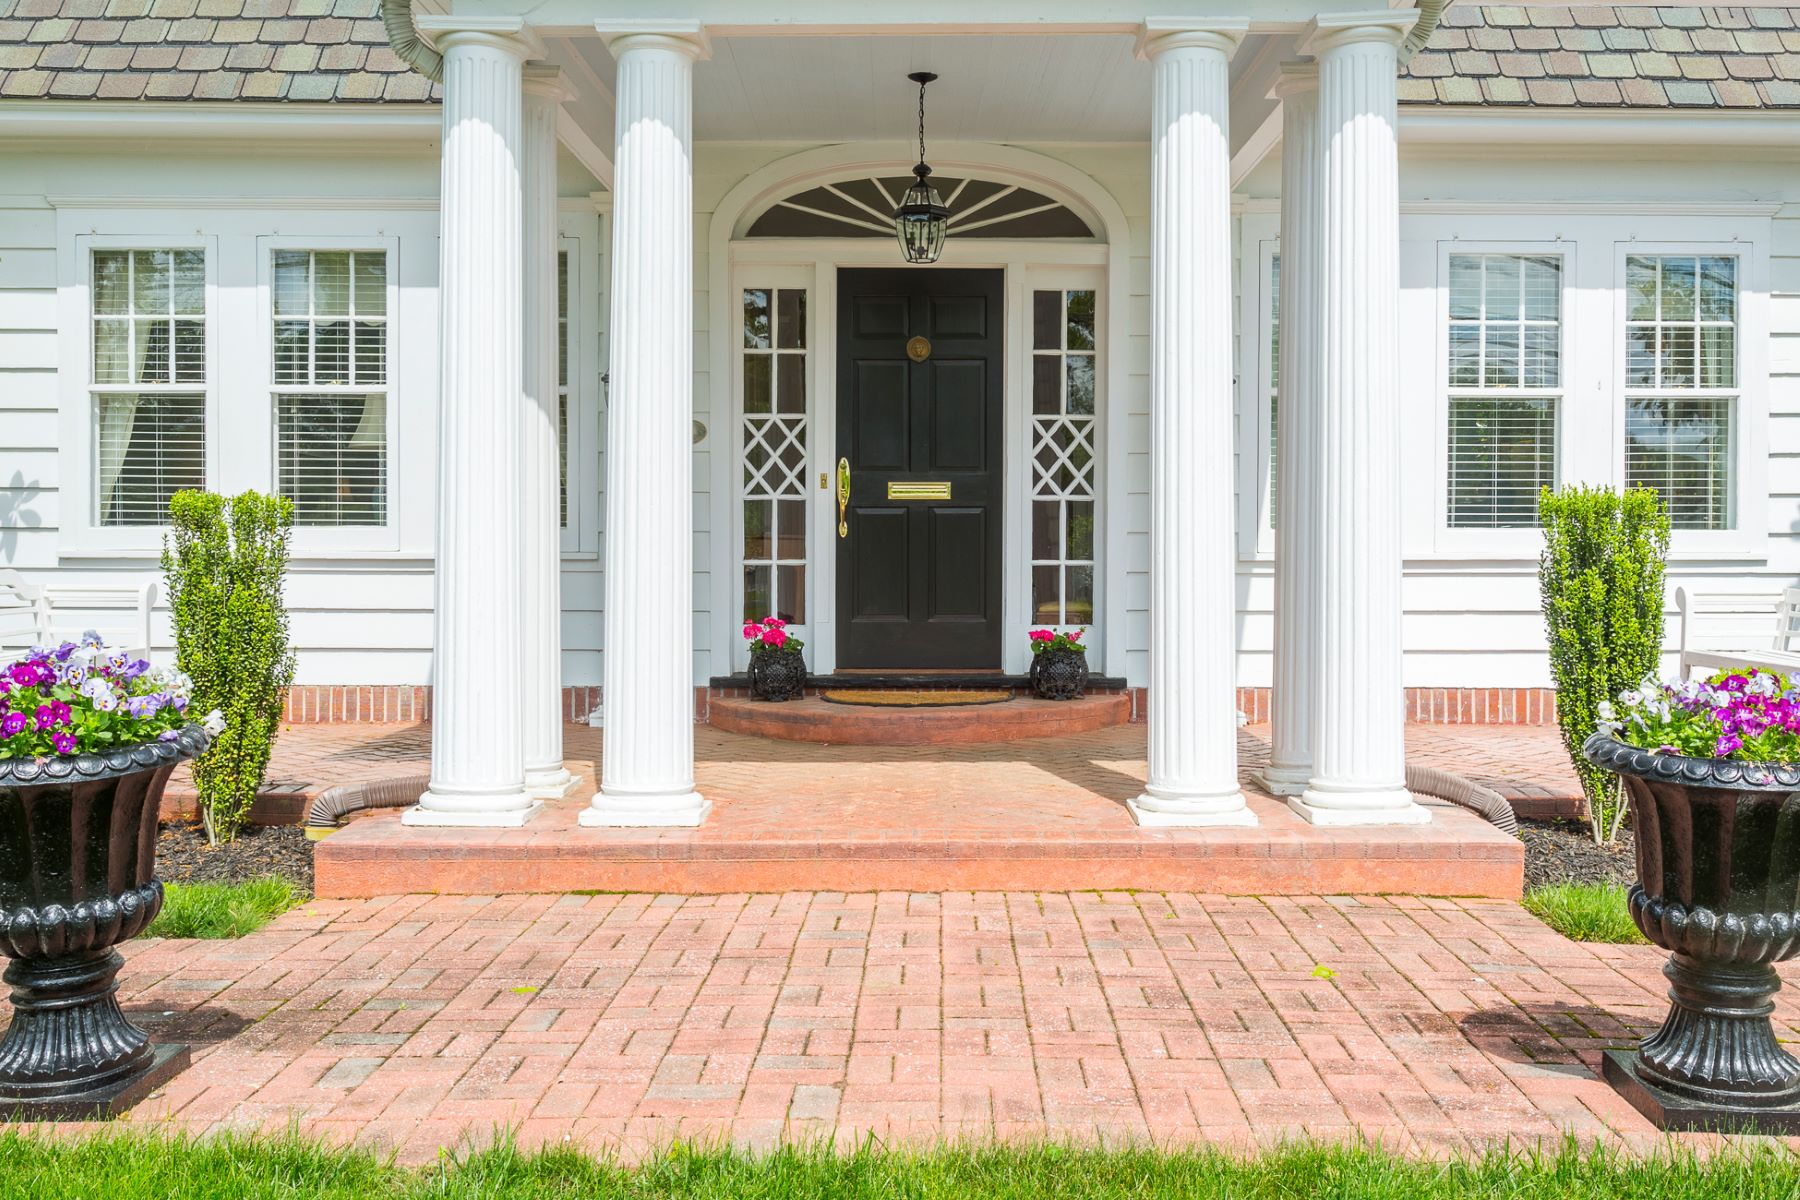 Additional photo for property listing at Maple Manor, The Pretty White House Admired By All - Lawrence Township 2739 Main Street Lawrenceville, Nueva Jersey 08648 Estados Unidos